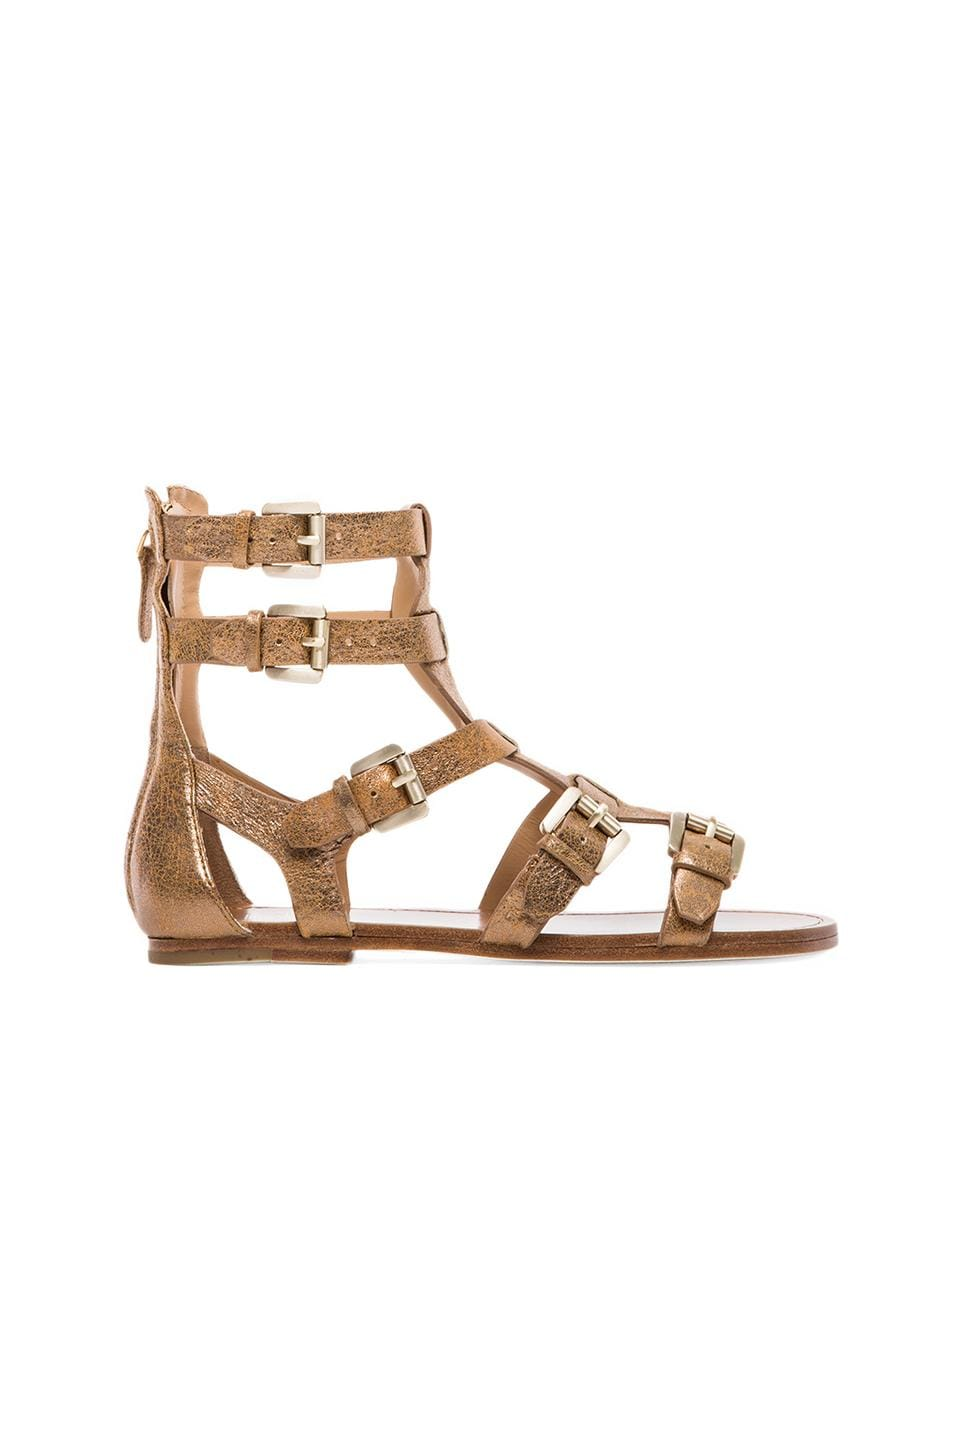 Belle by Sigerson Morrison Bianca Sandal in Pyrite